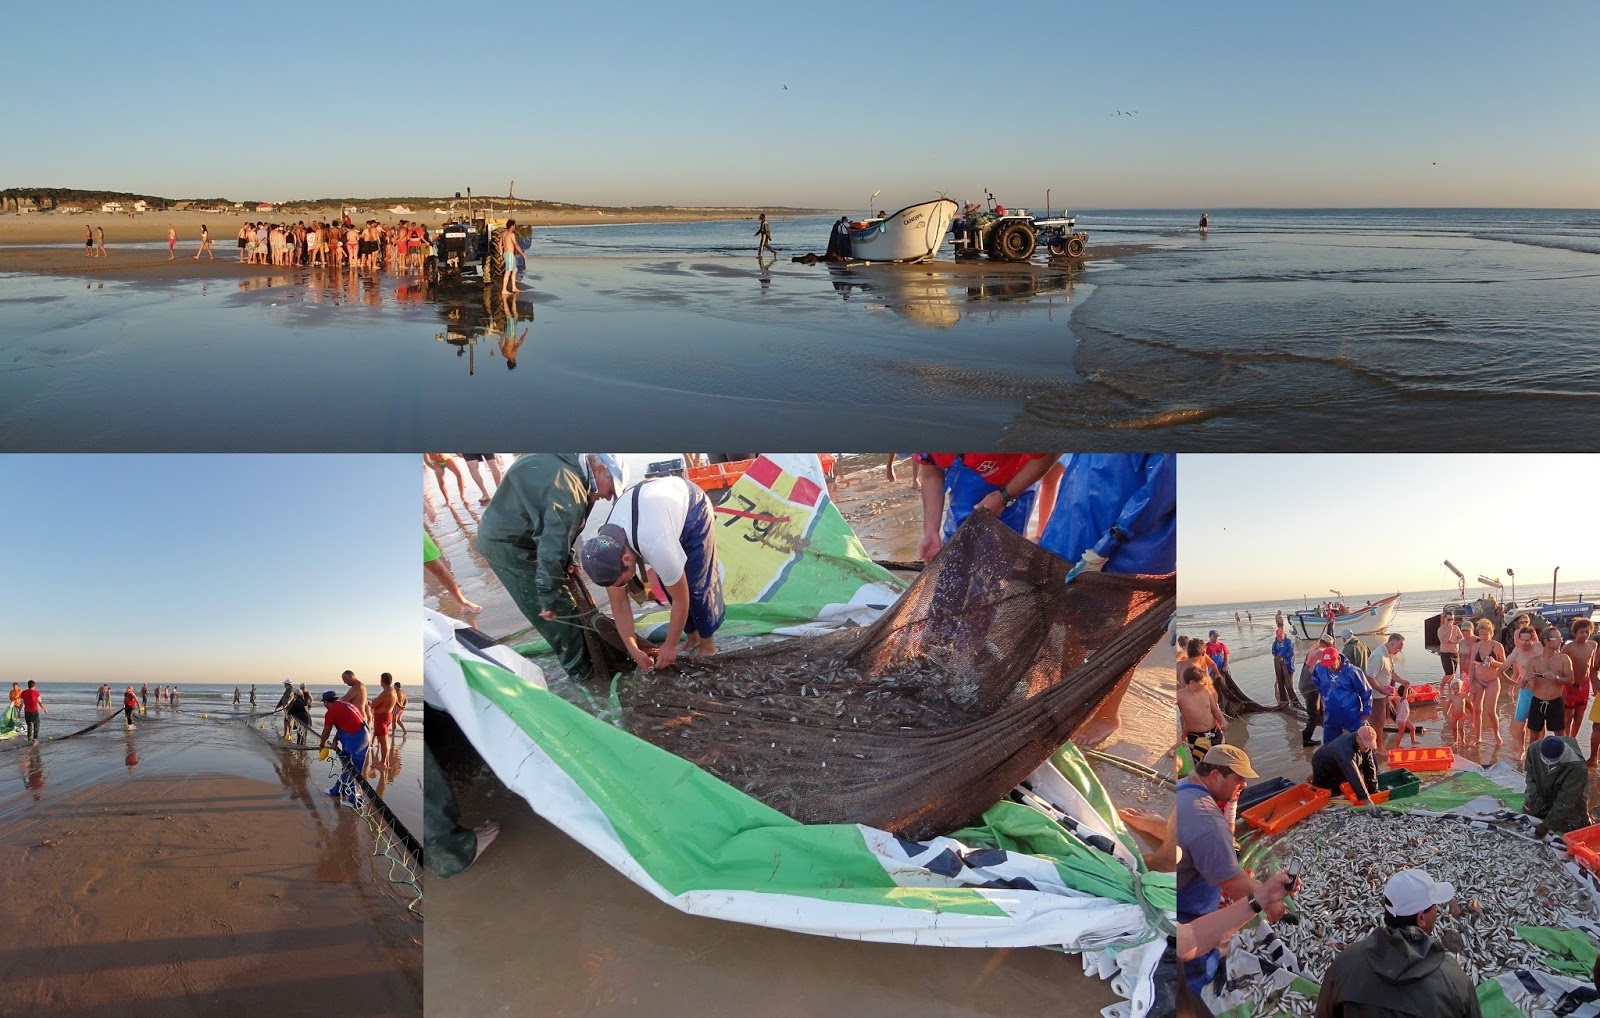 Fantasma del espacio de costa a costa intro latino dating